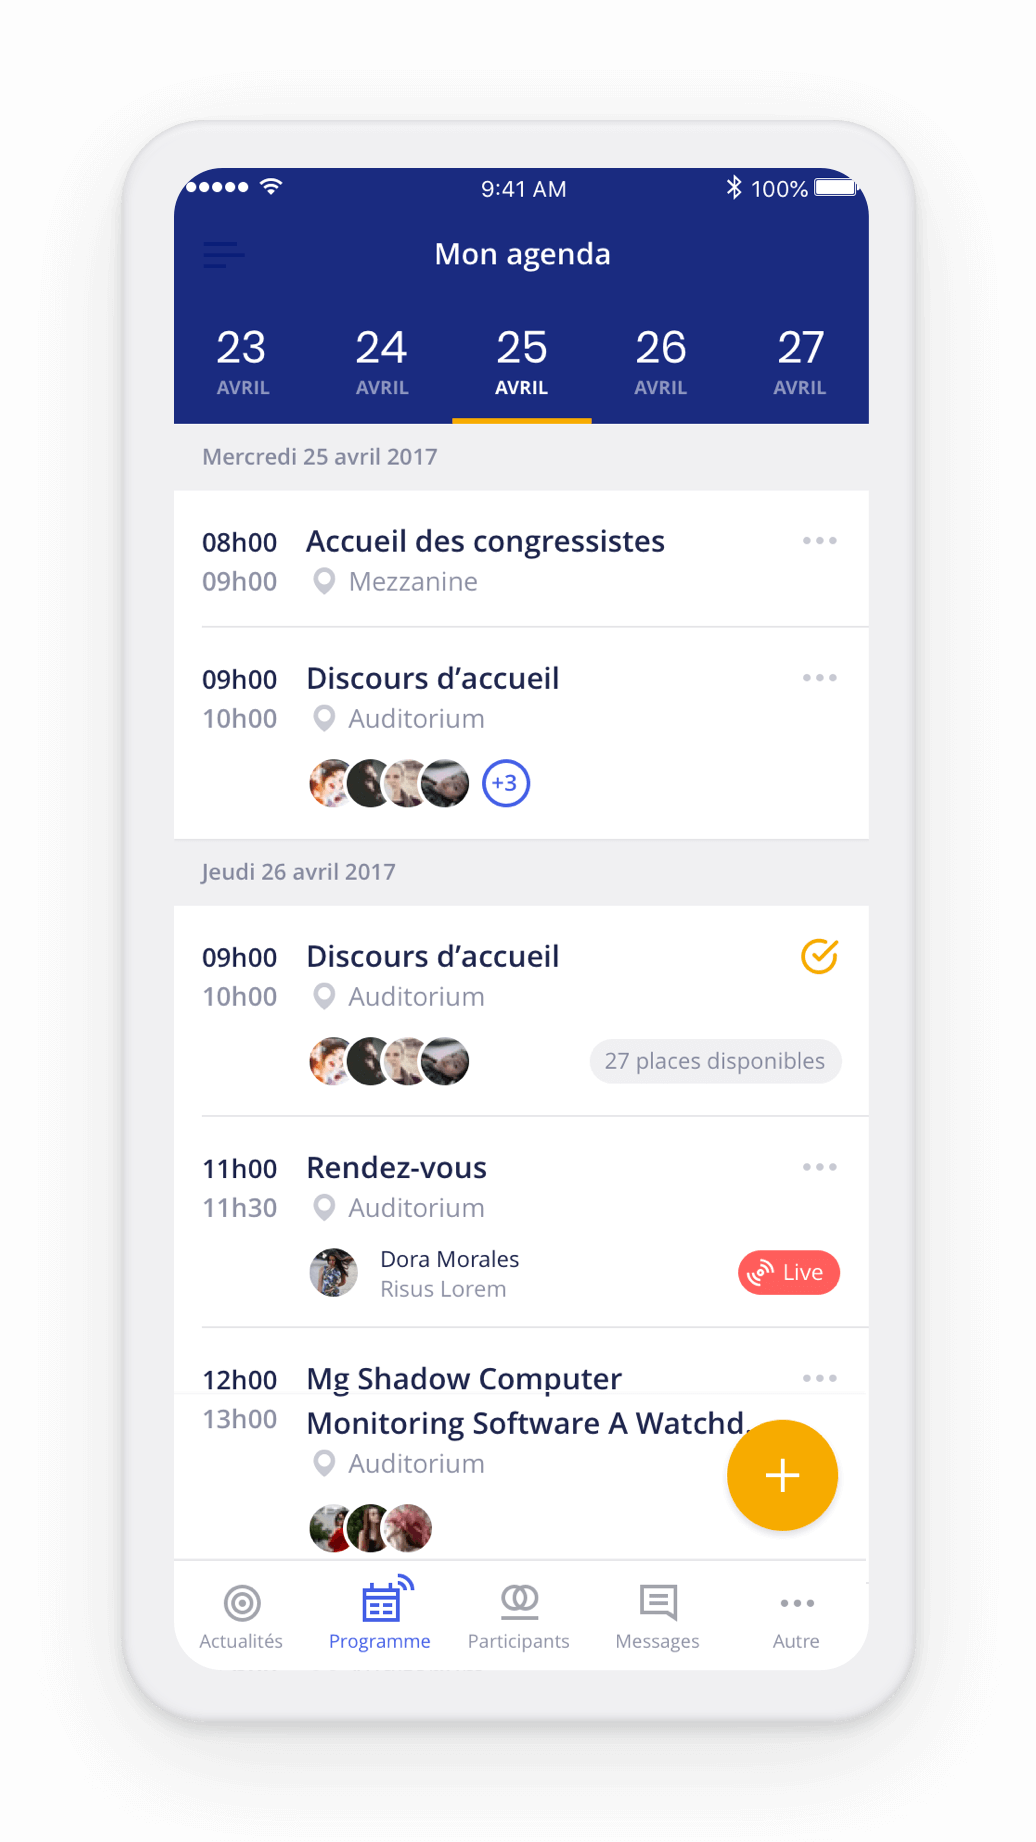 Agenda personnel dans l'application evenementielle Haloha